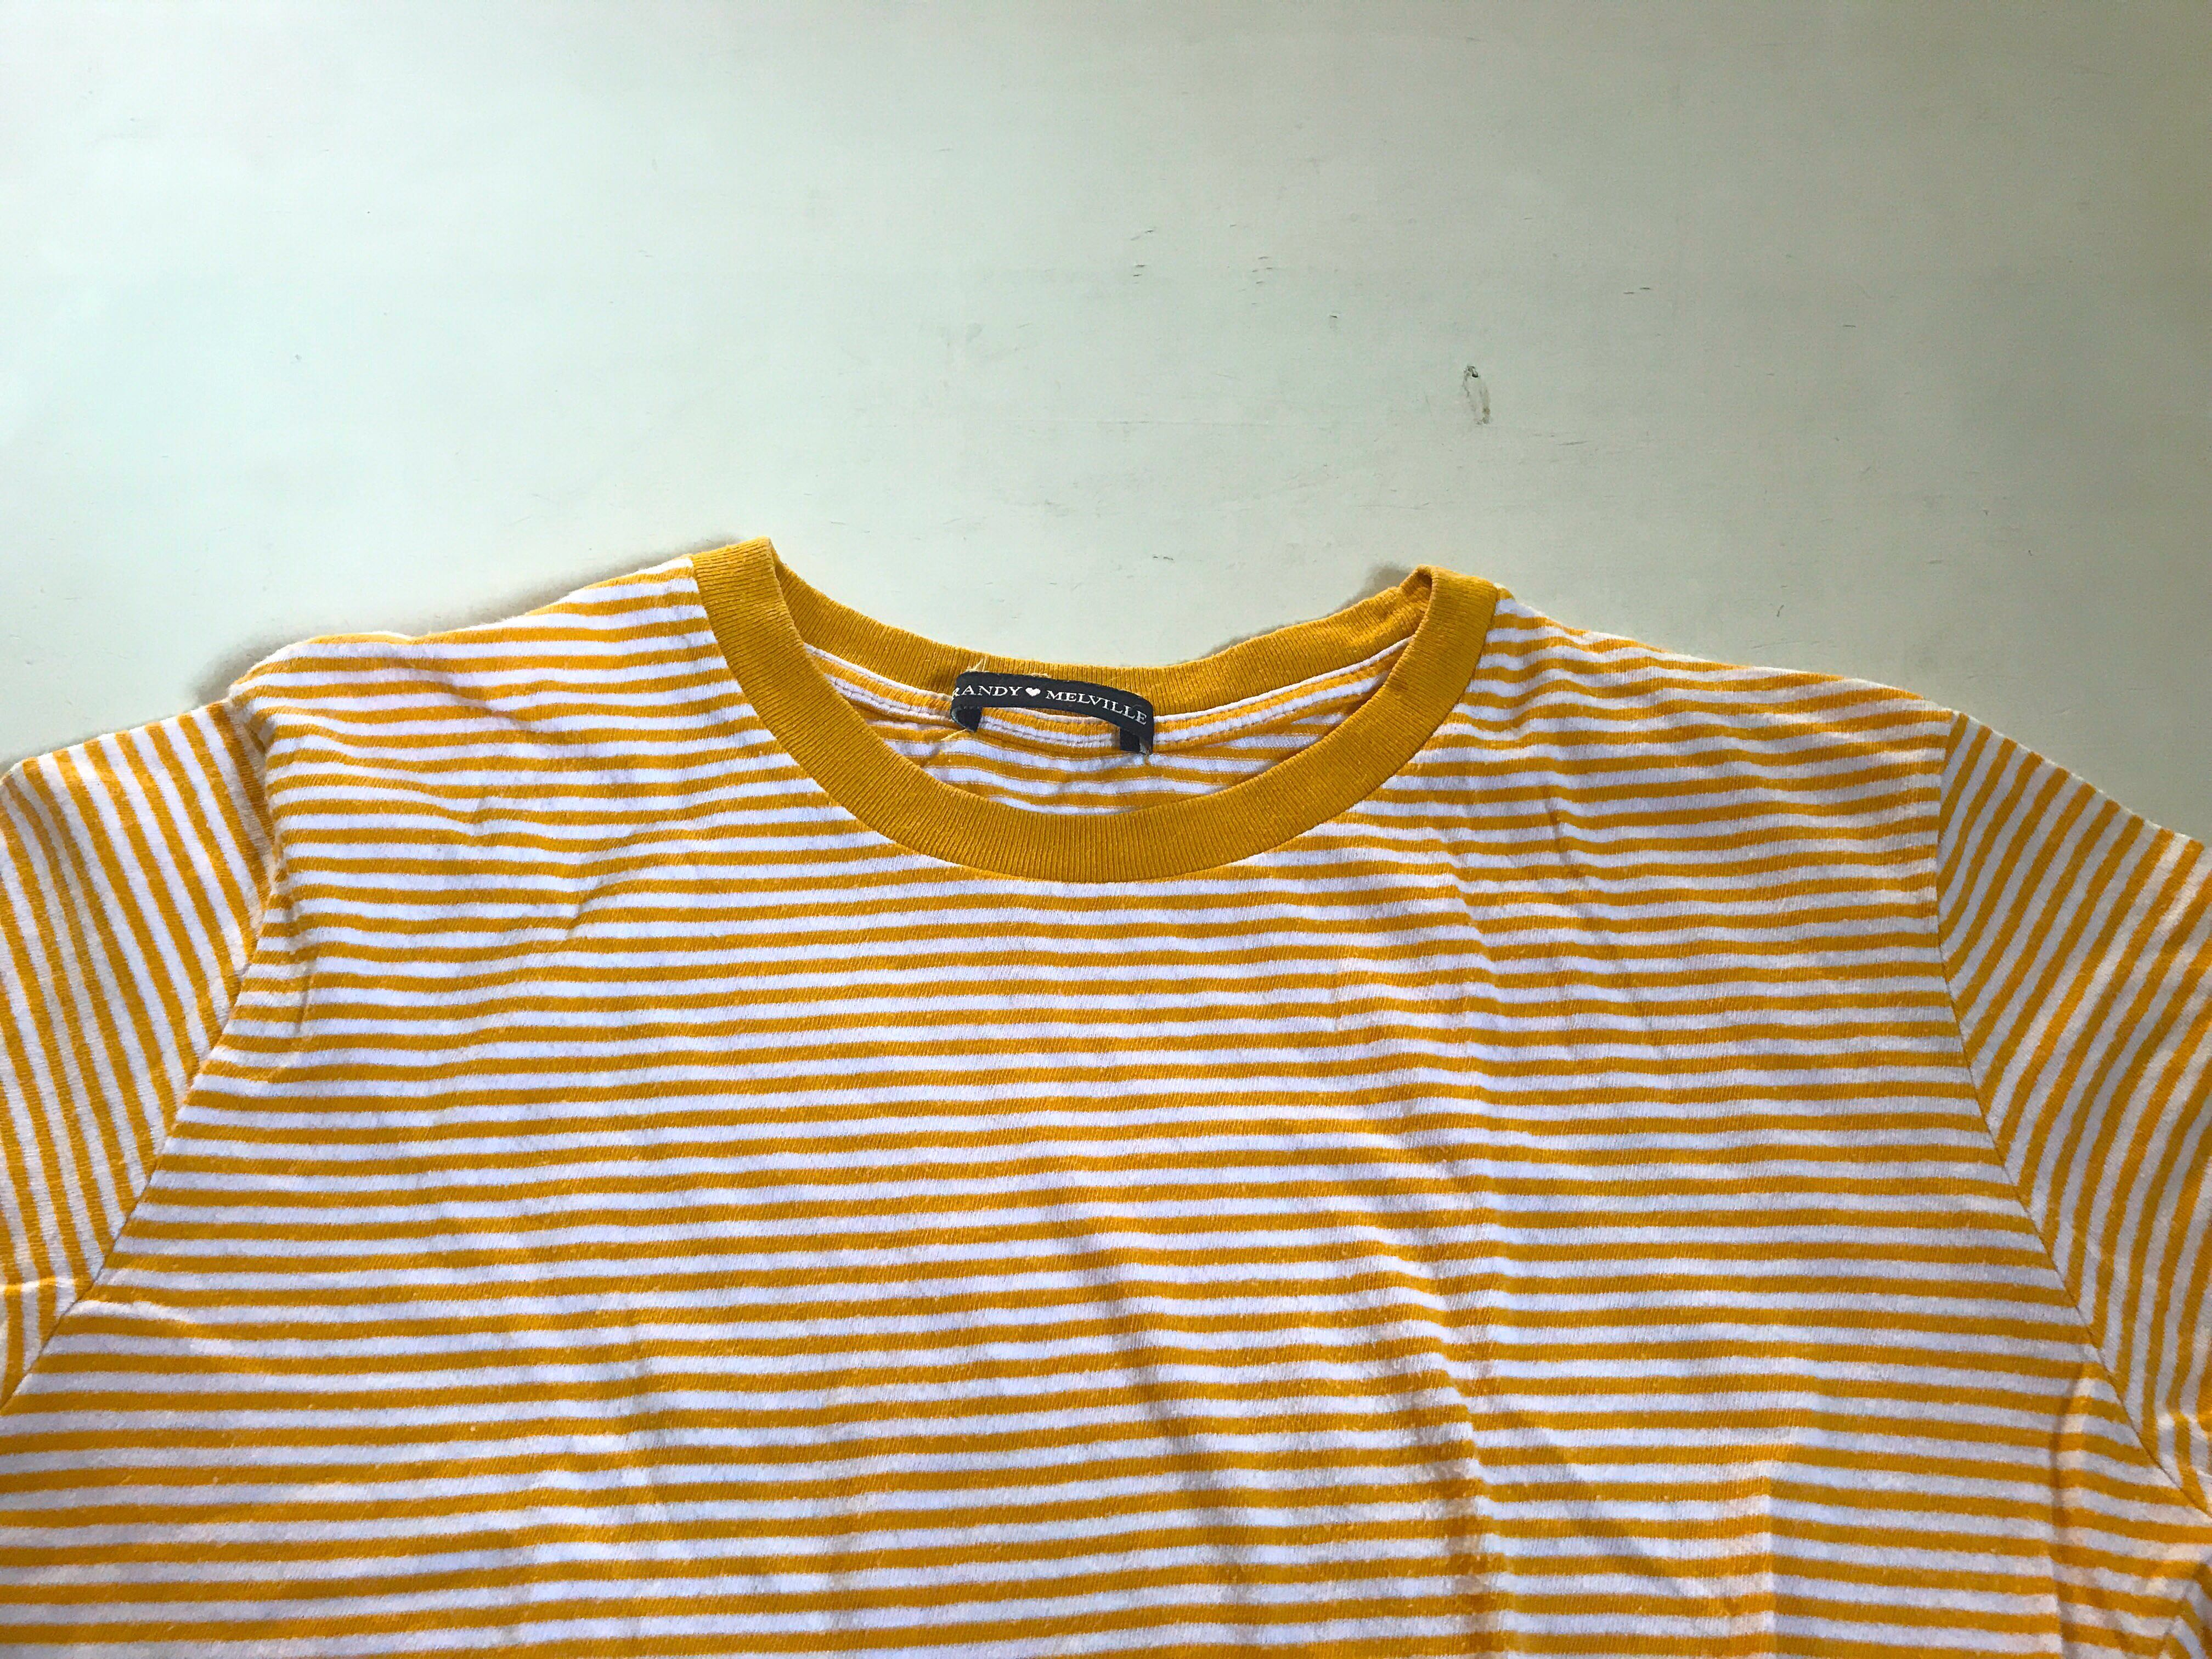 69538ee35d brandy melville yellow striped top, Women's Fashion, Clothes, Tops ...